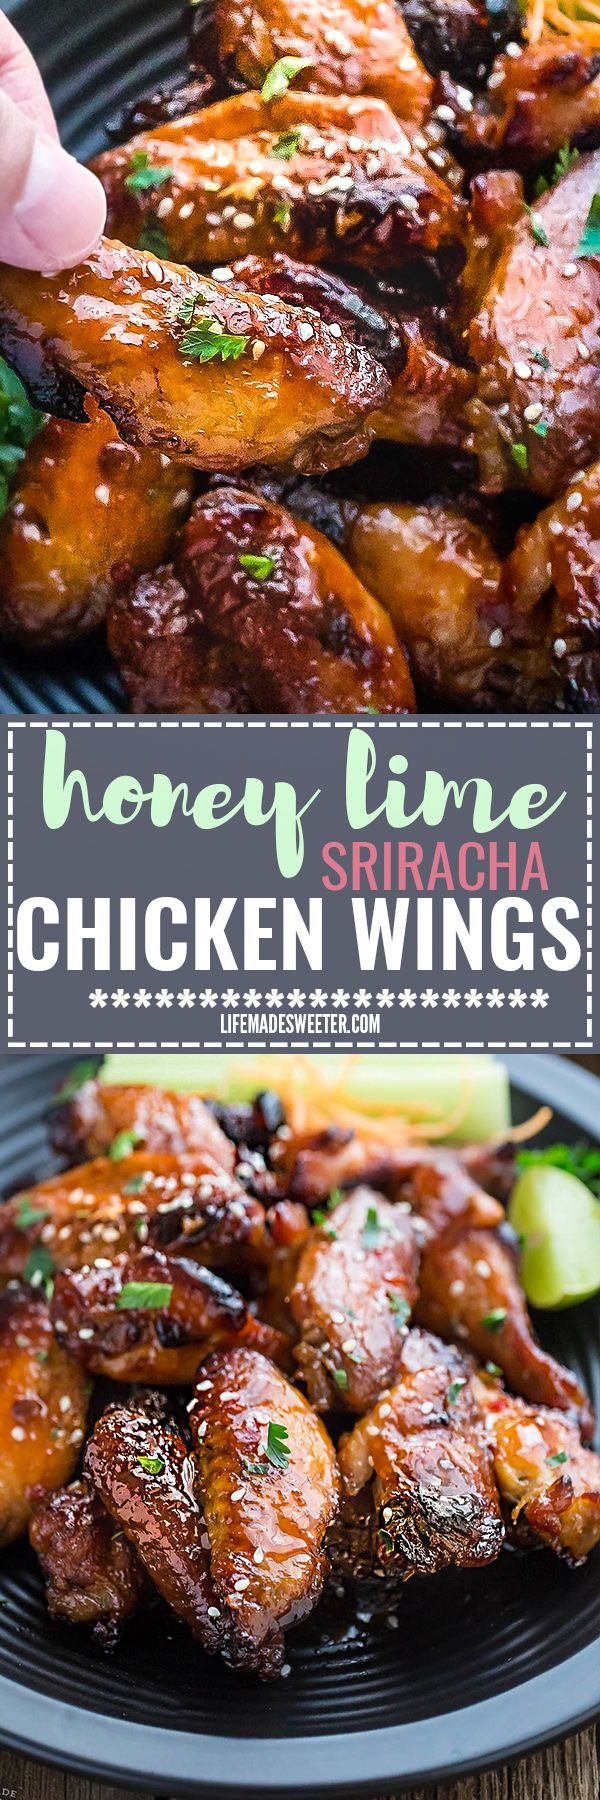 Slow Cooker or Baked Honey Lime Sriracha Chicken Wings makes the perfect appetizers for game day. Best of all, they're so easy to make with a flavorful and delicious Asian inspired sticky sauce.